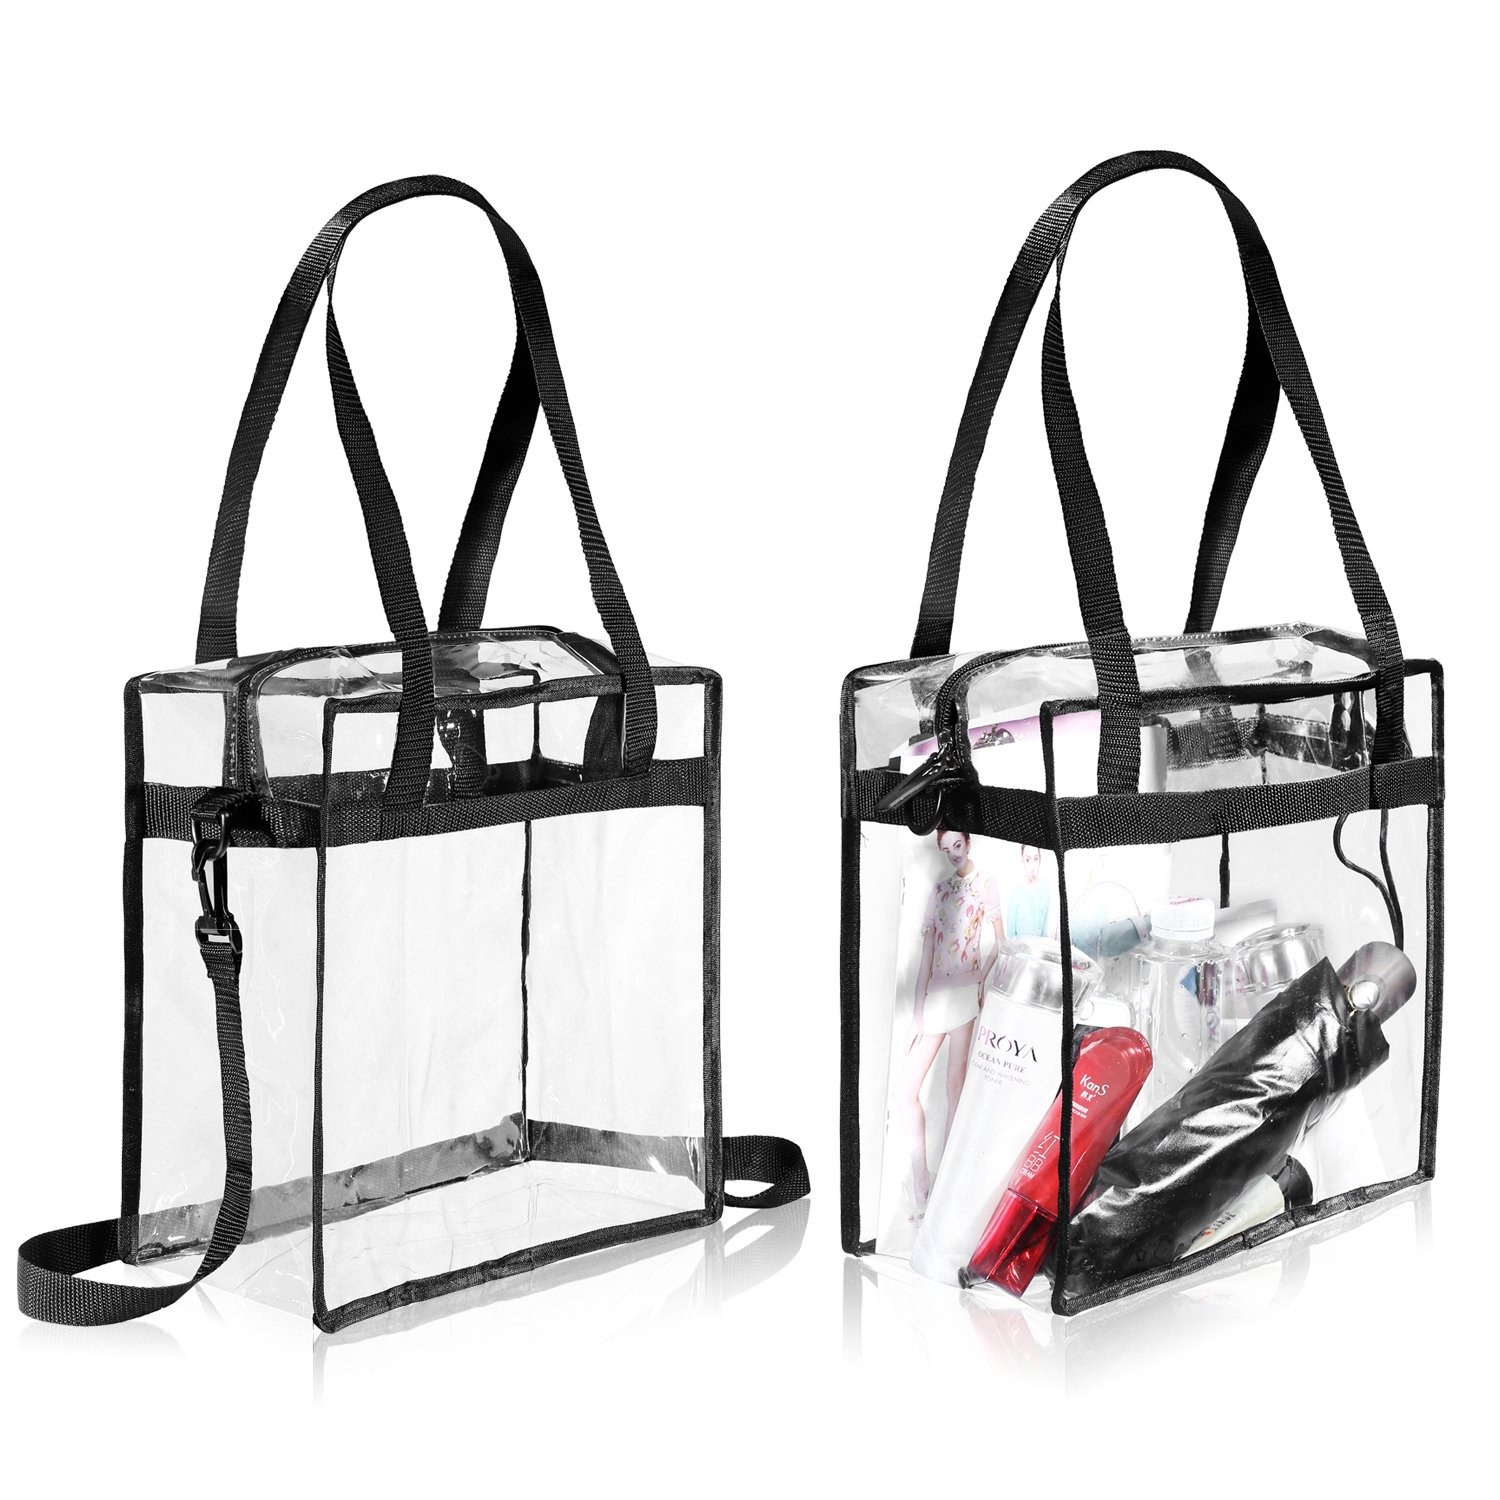 "Clear Bags NFL & PGA Stadium Approved - The Clear Tote Bag with Zipper Closure is Perfect for Work, Sports Games.Cross-Body Messenger Shoulder Bag w Adjustable Strap -12"" X 12"" X 6"" (Two Bag) by BAGAIL"